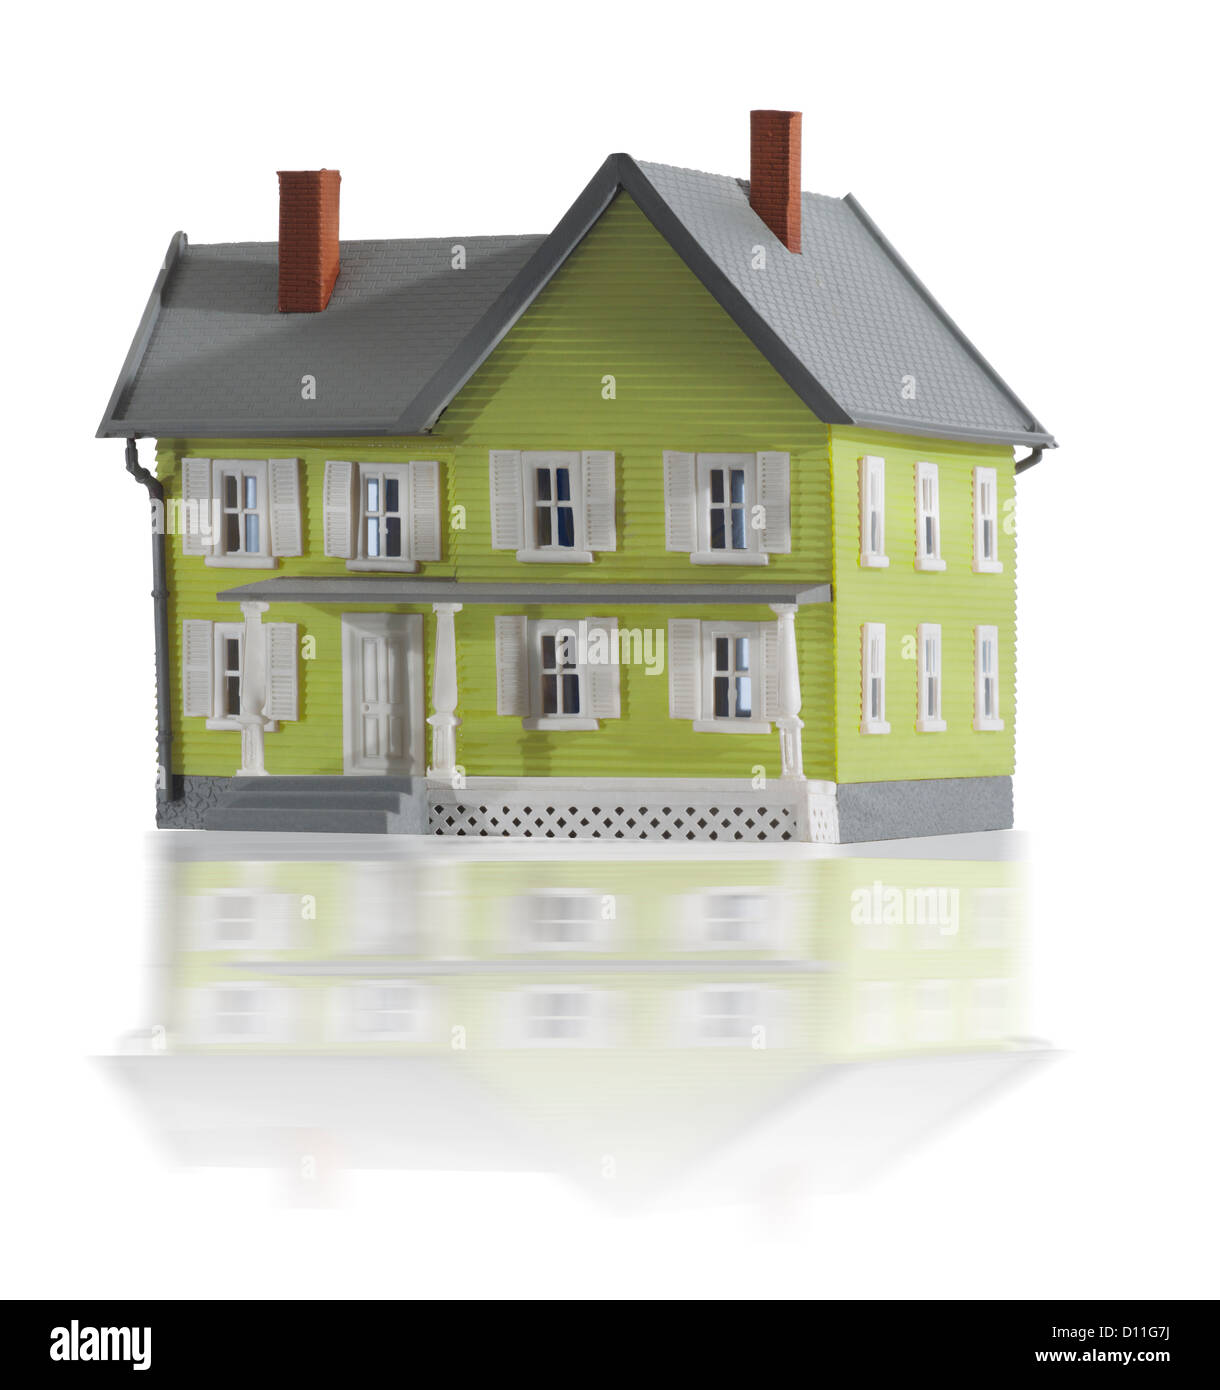 Gray and green miniature farm house - Stock Image